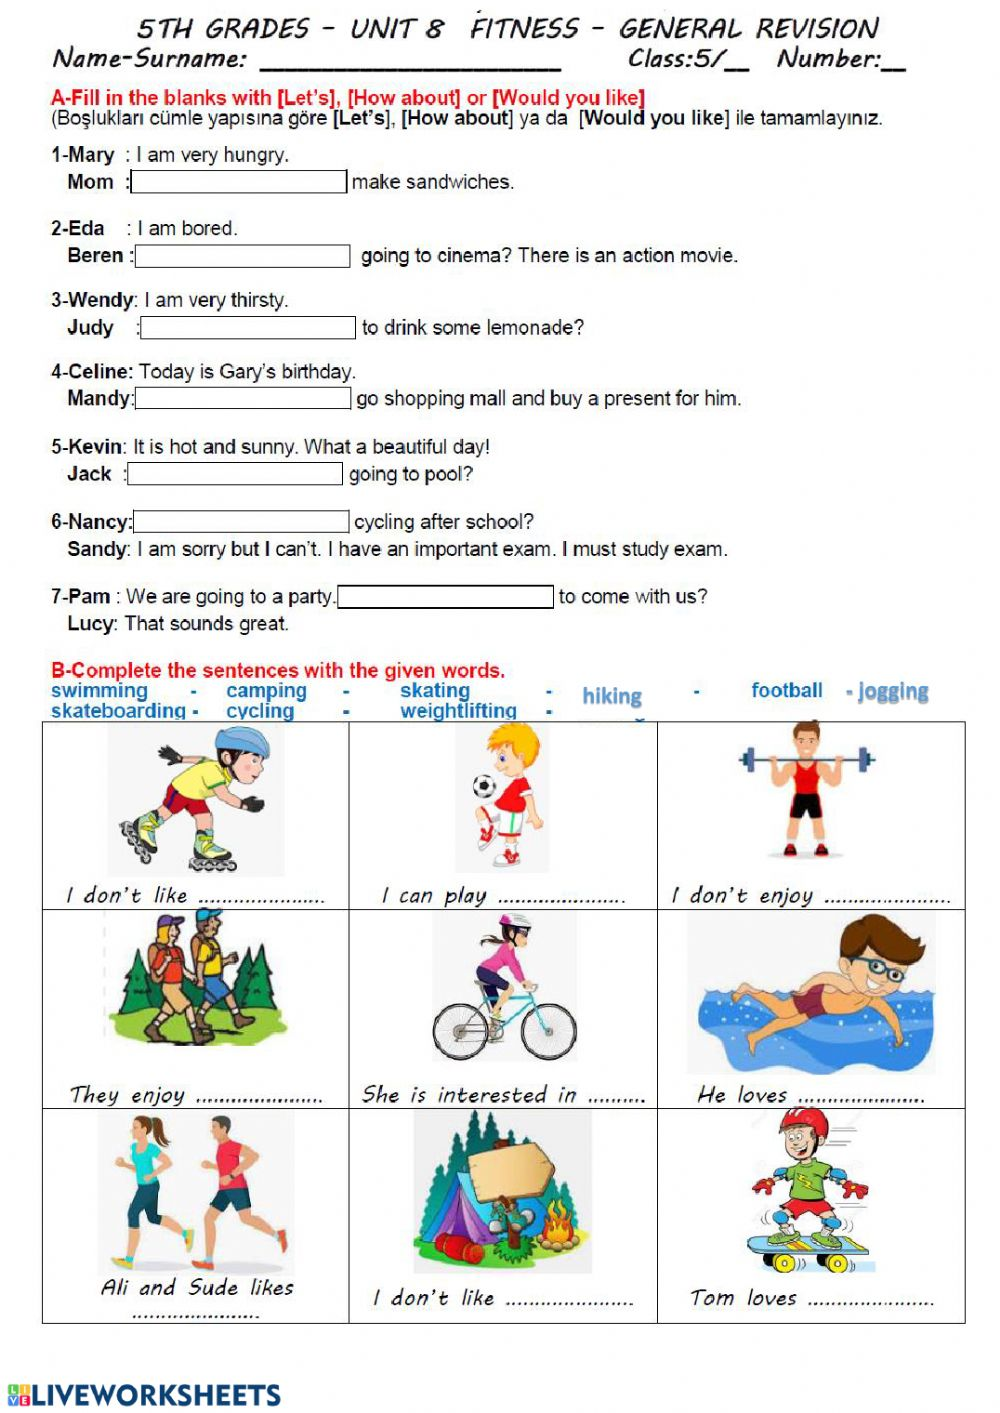 Fitness General Revision Page - Interactive worksheet